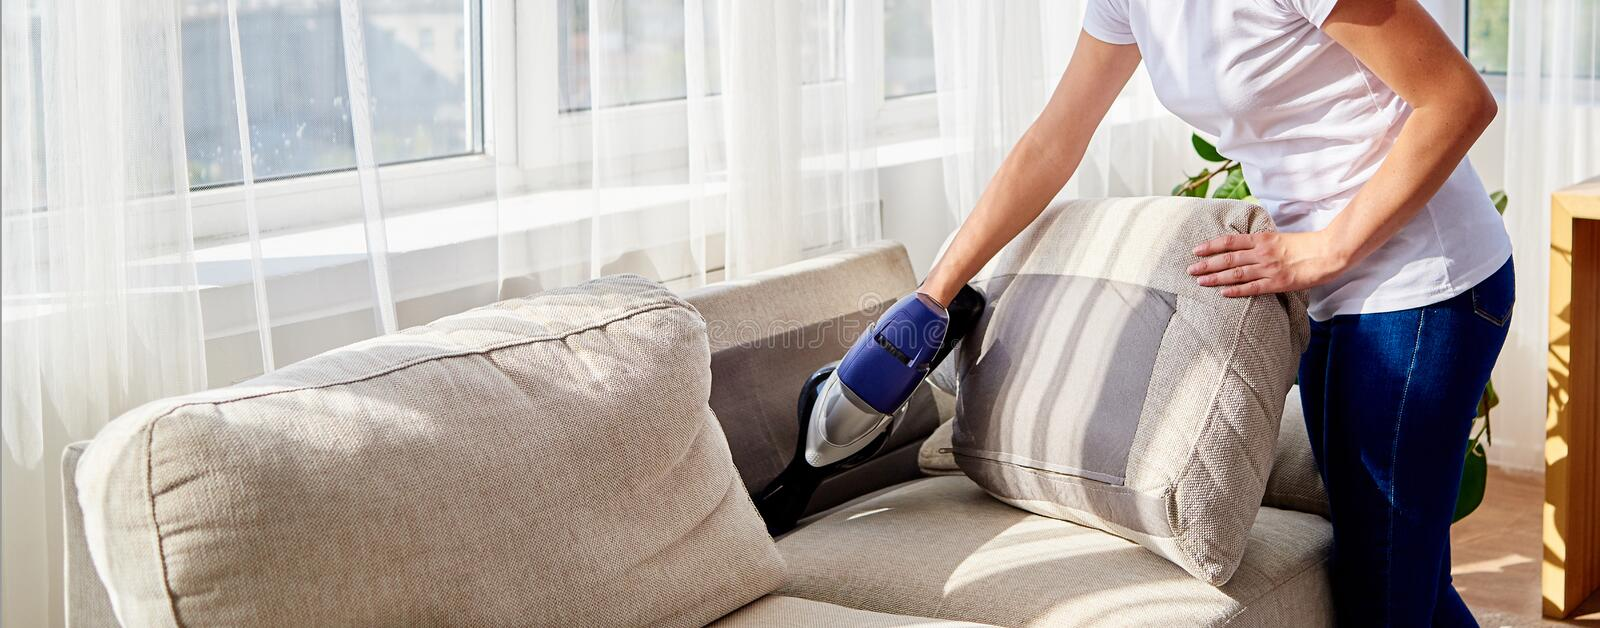 Young woman in white shirt and jeans cleaning sofa with vacuum cleaner in living room, copy space. Housework, spring-cleaning stock image